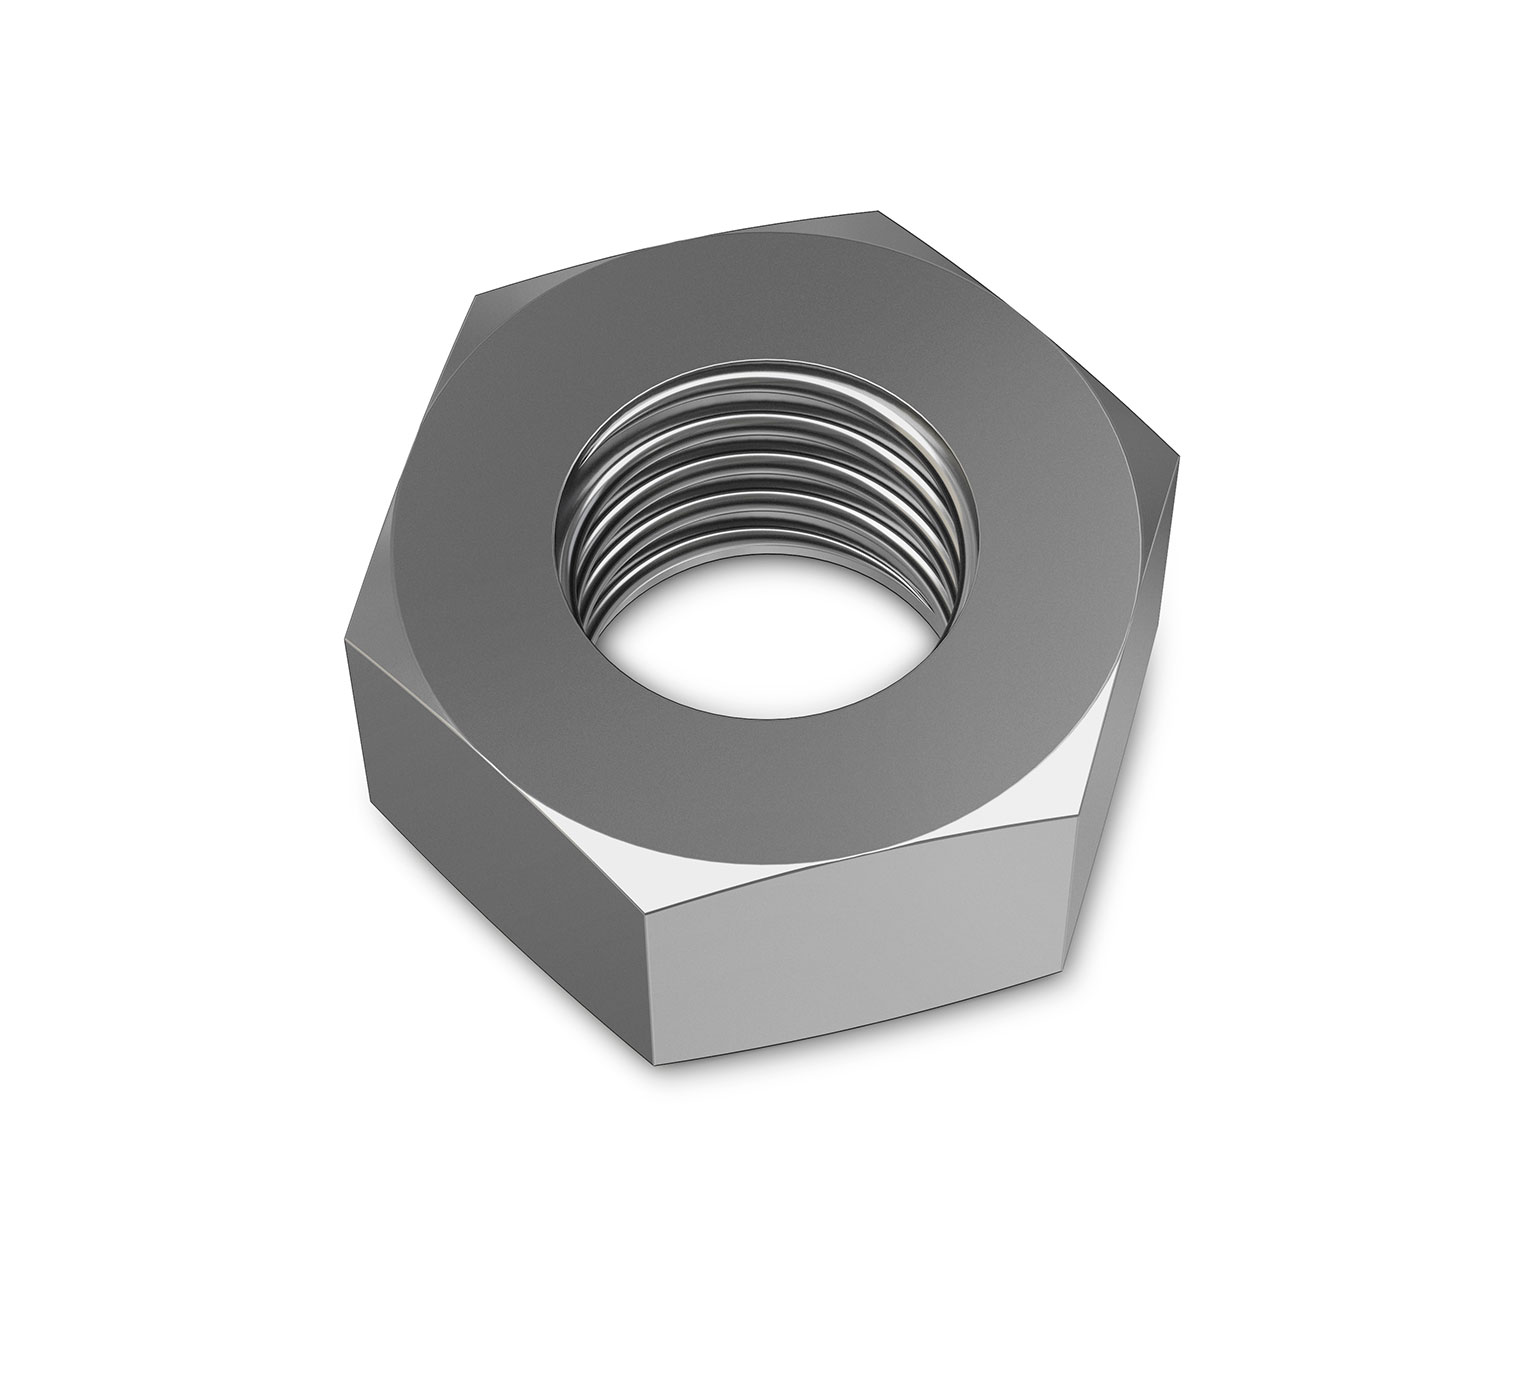 1037470 Stainless Steel Hex Nut - 0.86 x 0.425 in alt 1